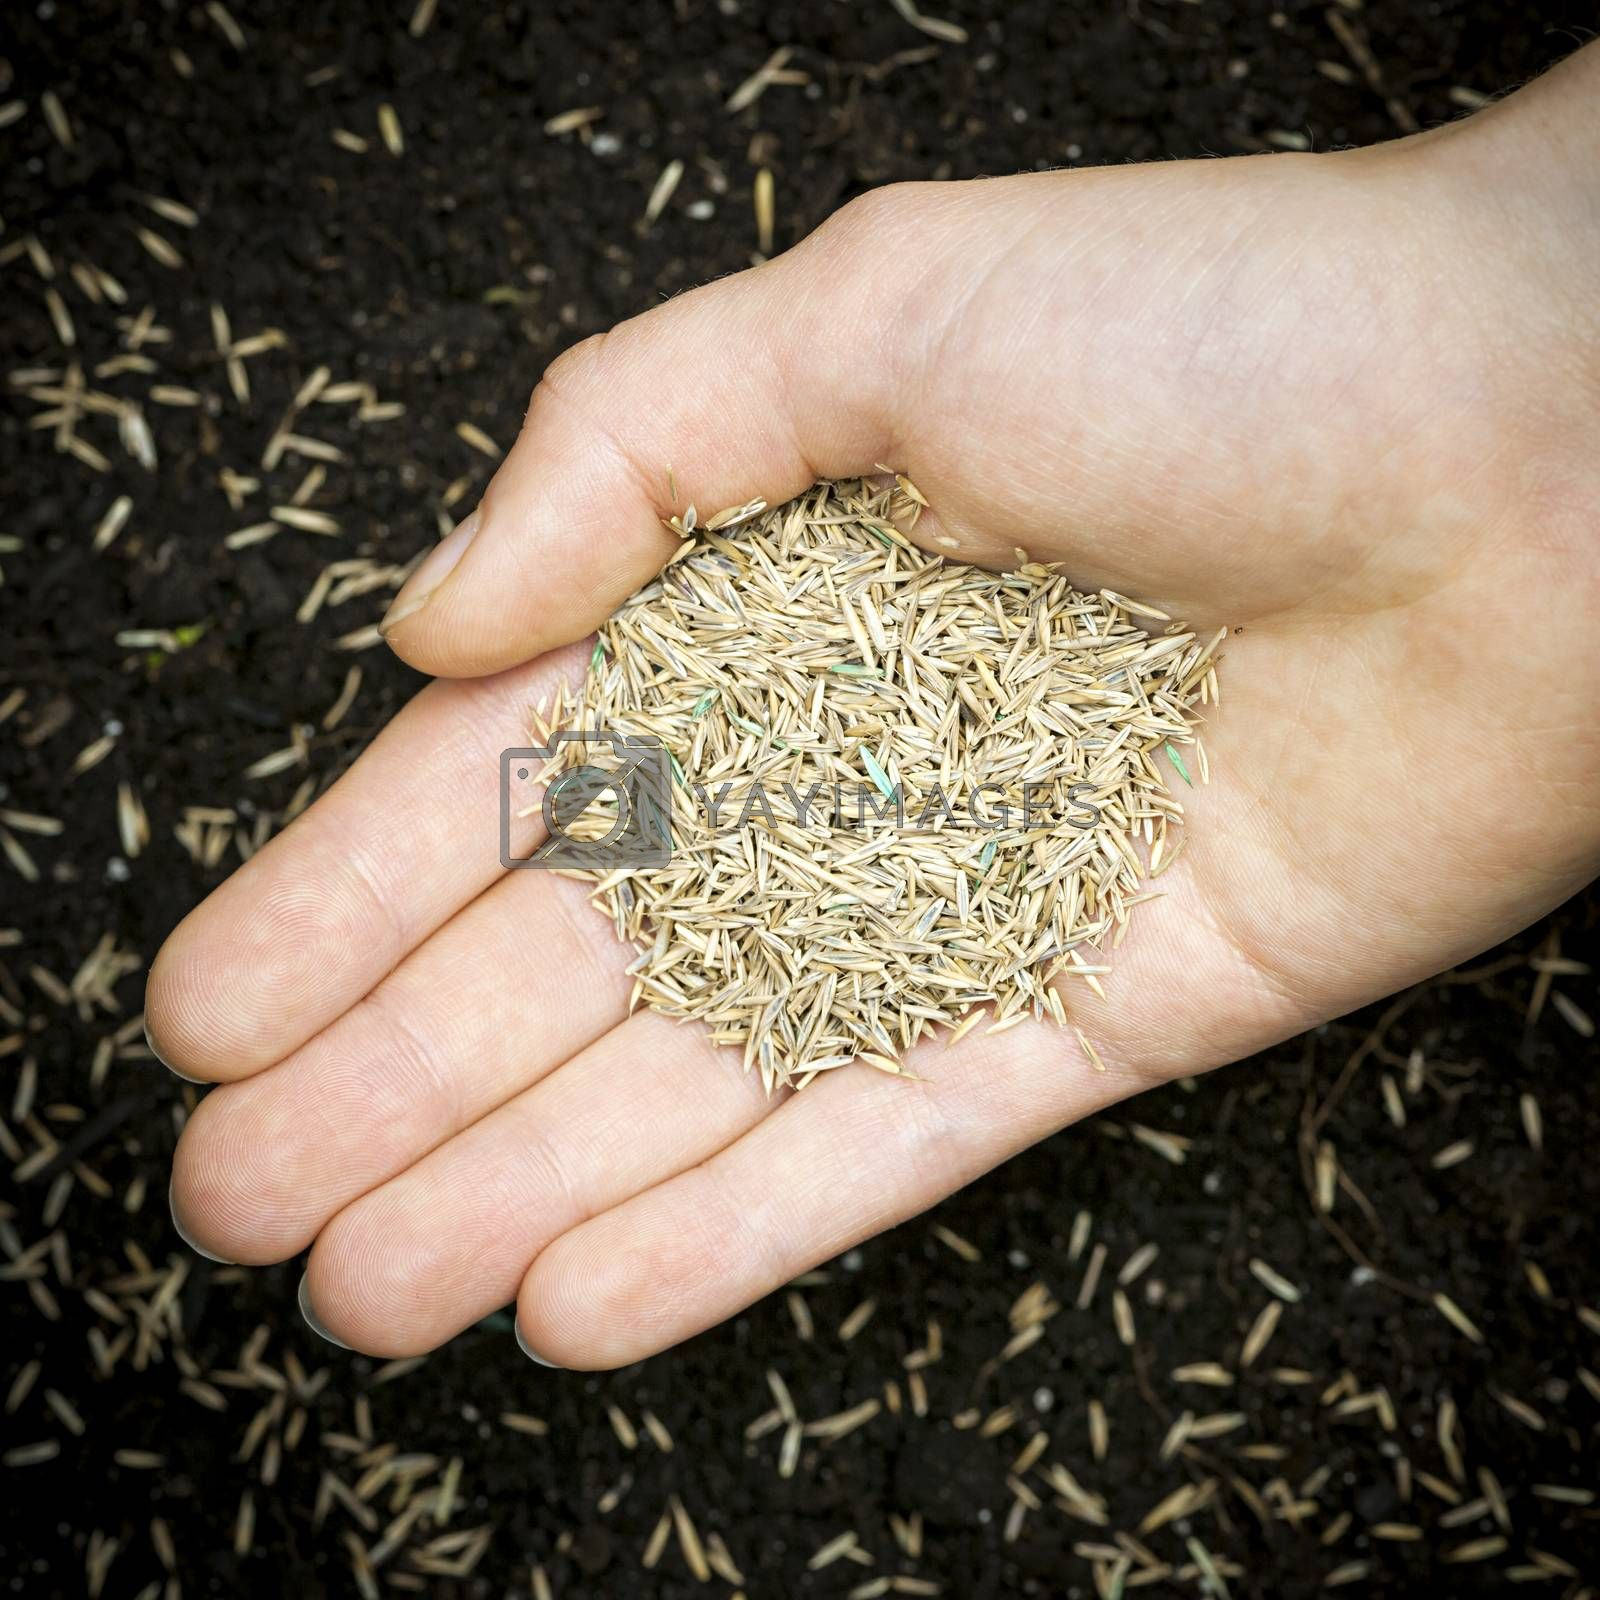 Grass seed held in hand over soil with planted seeds